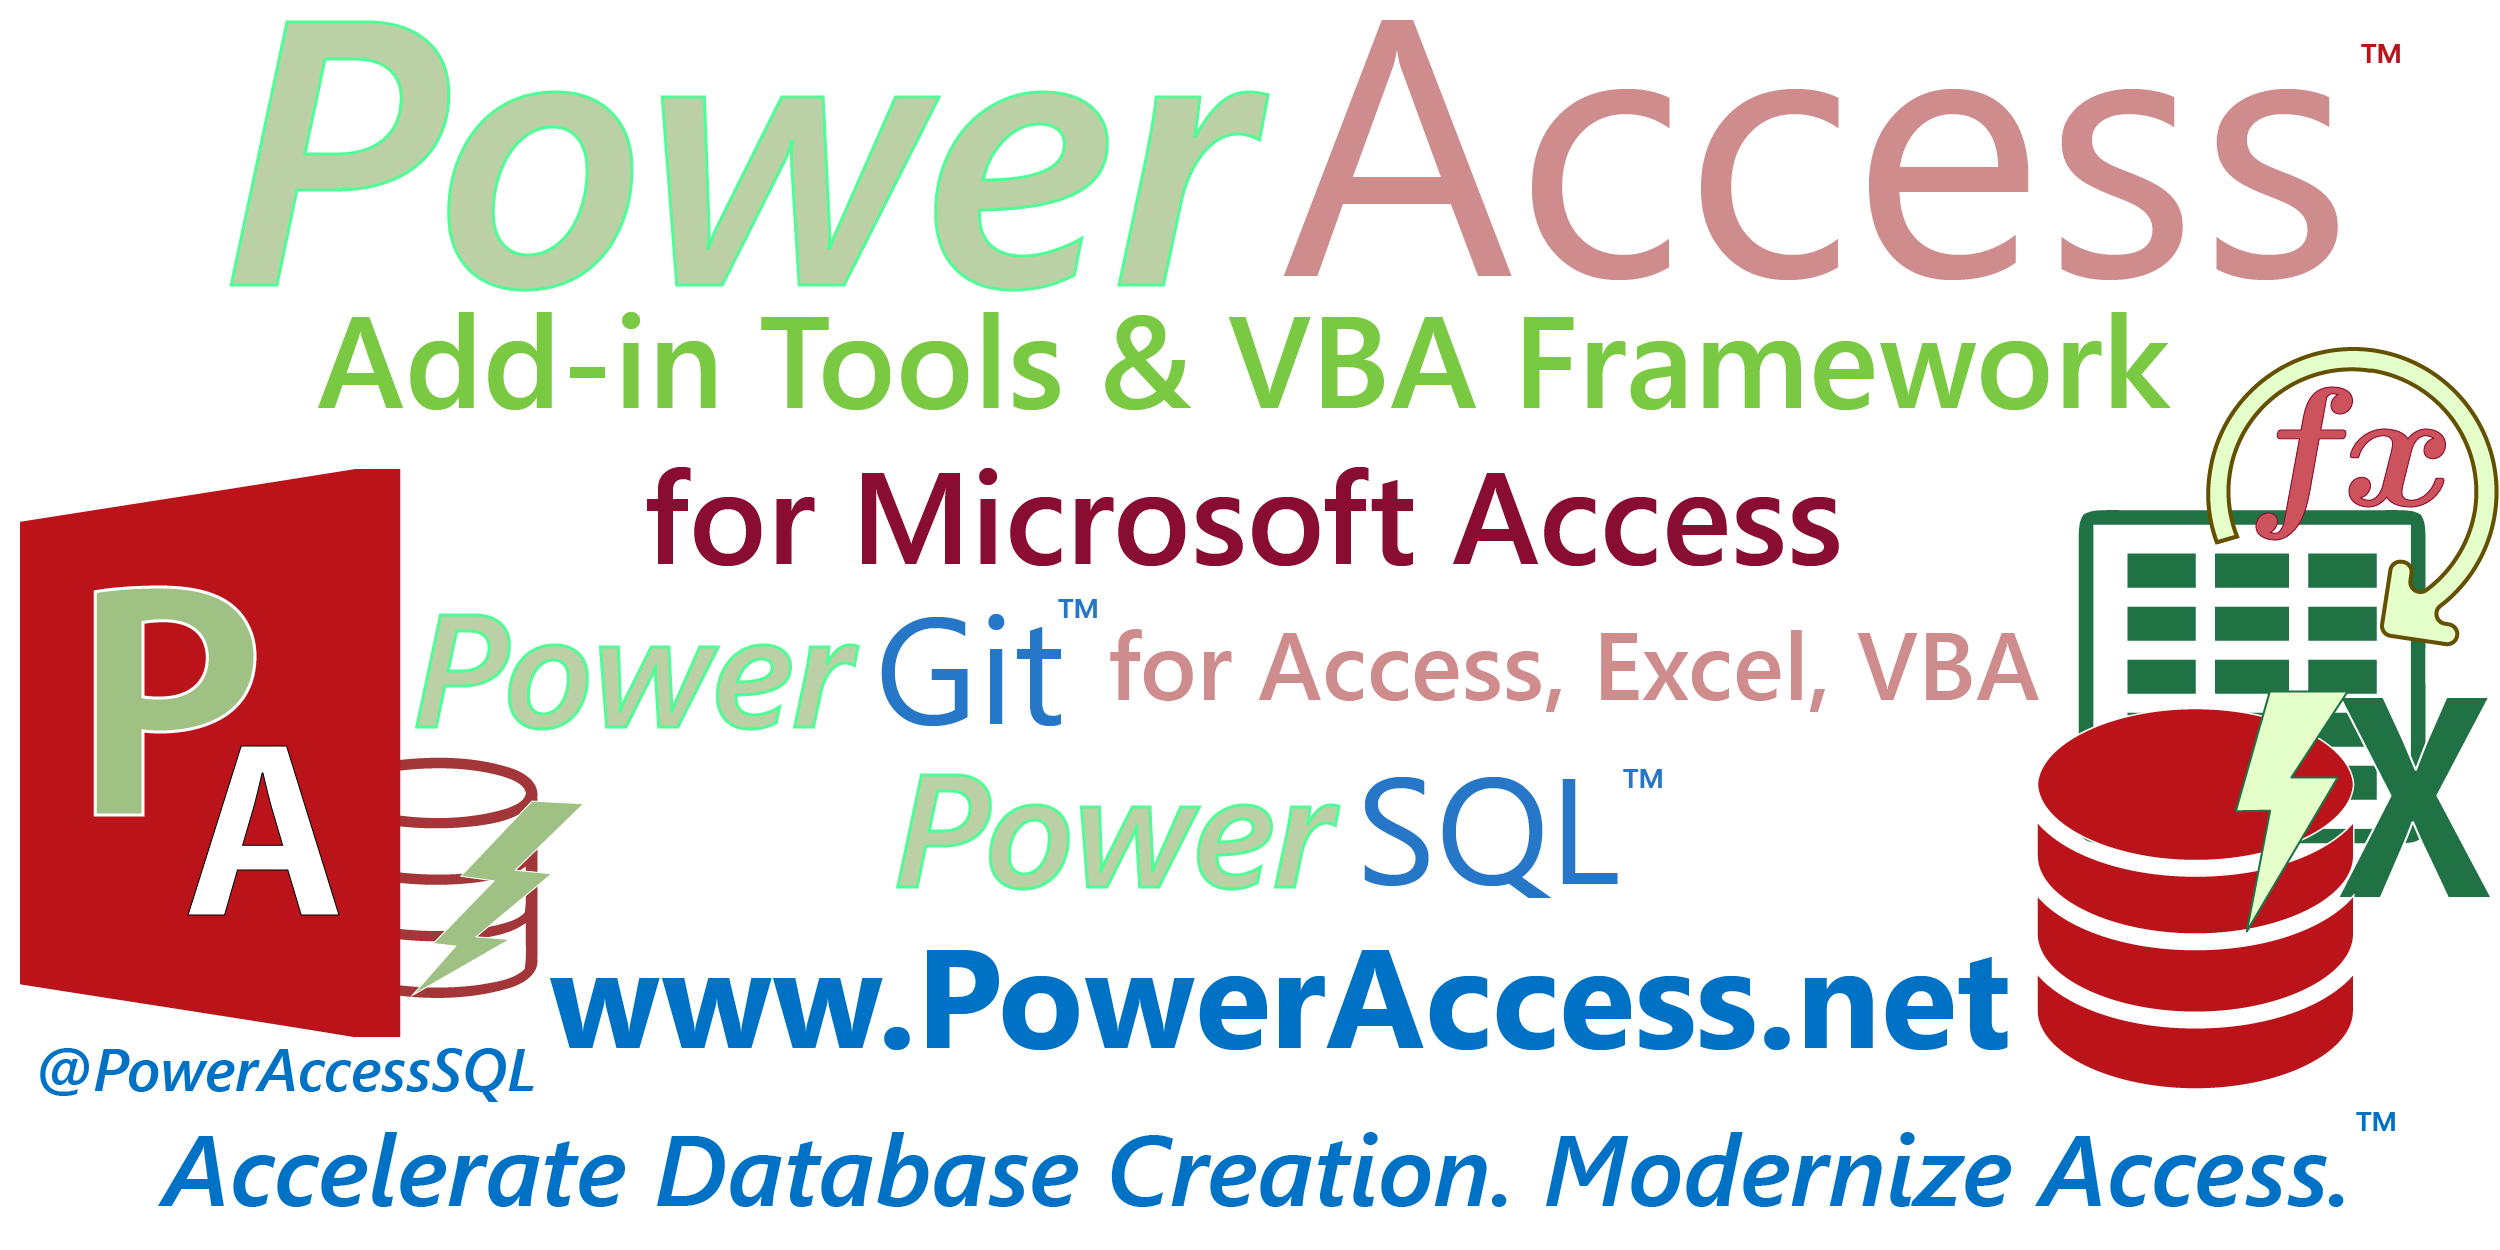 Microsoft Access Databases Deployment Options and Compiled, Protected